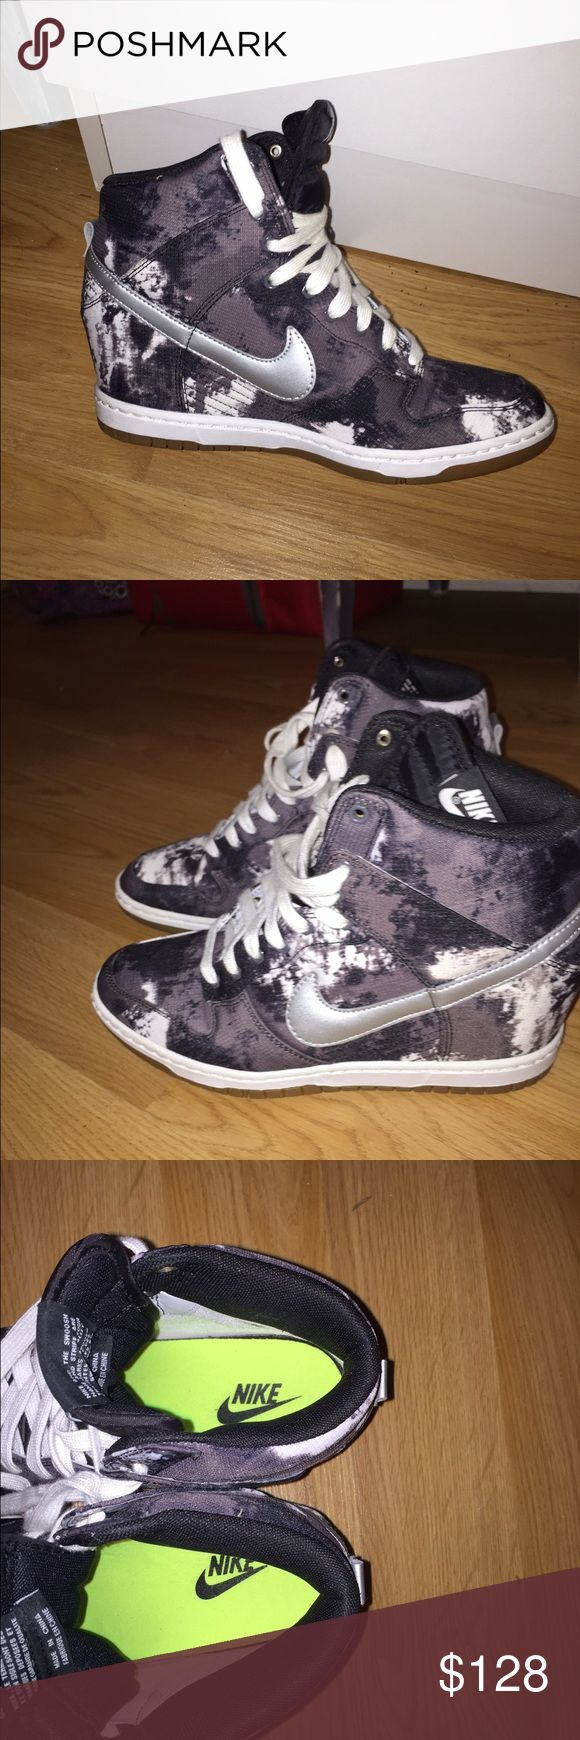 Nike dunk wedge sneakers Grey and white nike wedged sneakers- worn twice. Basically new. Nike Shoes Sneakers